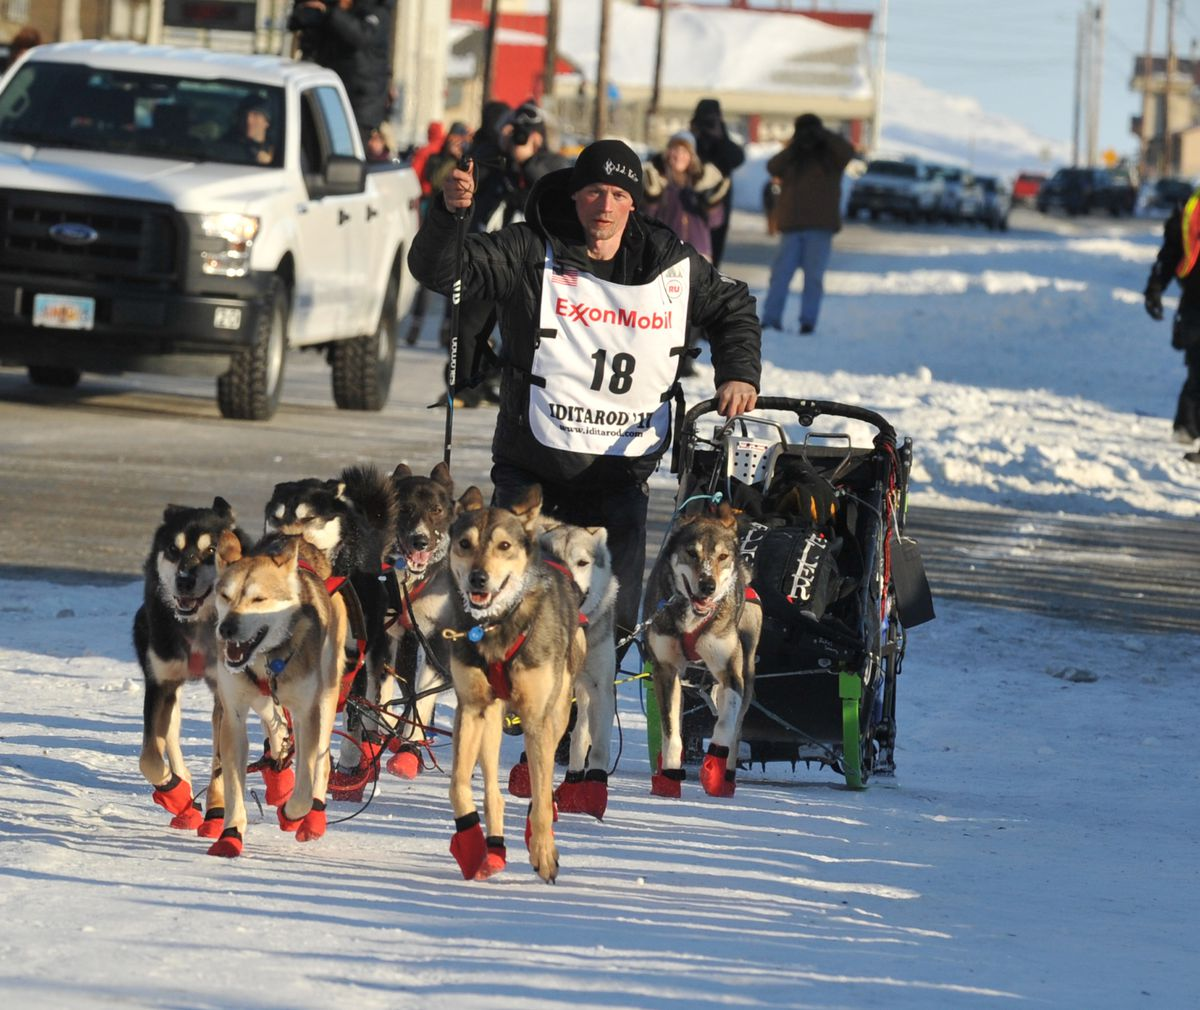 Dallas Seavey finishes the 2017 Iditarod in second place on March 14, 2017. (Bob Hallinen / Alaska Dispatch News)